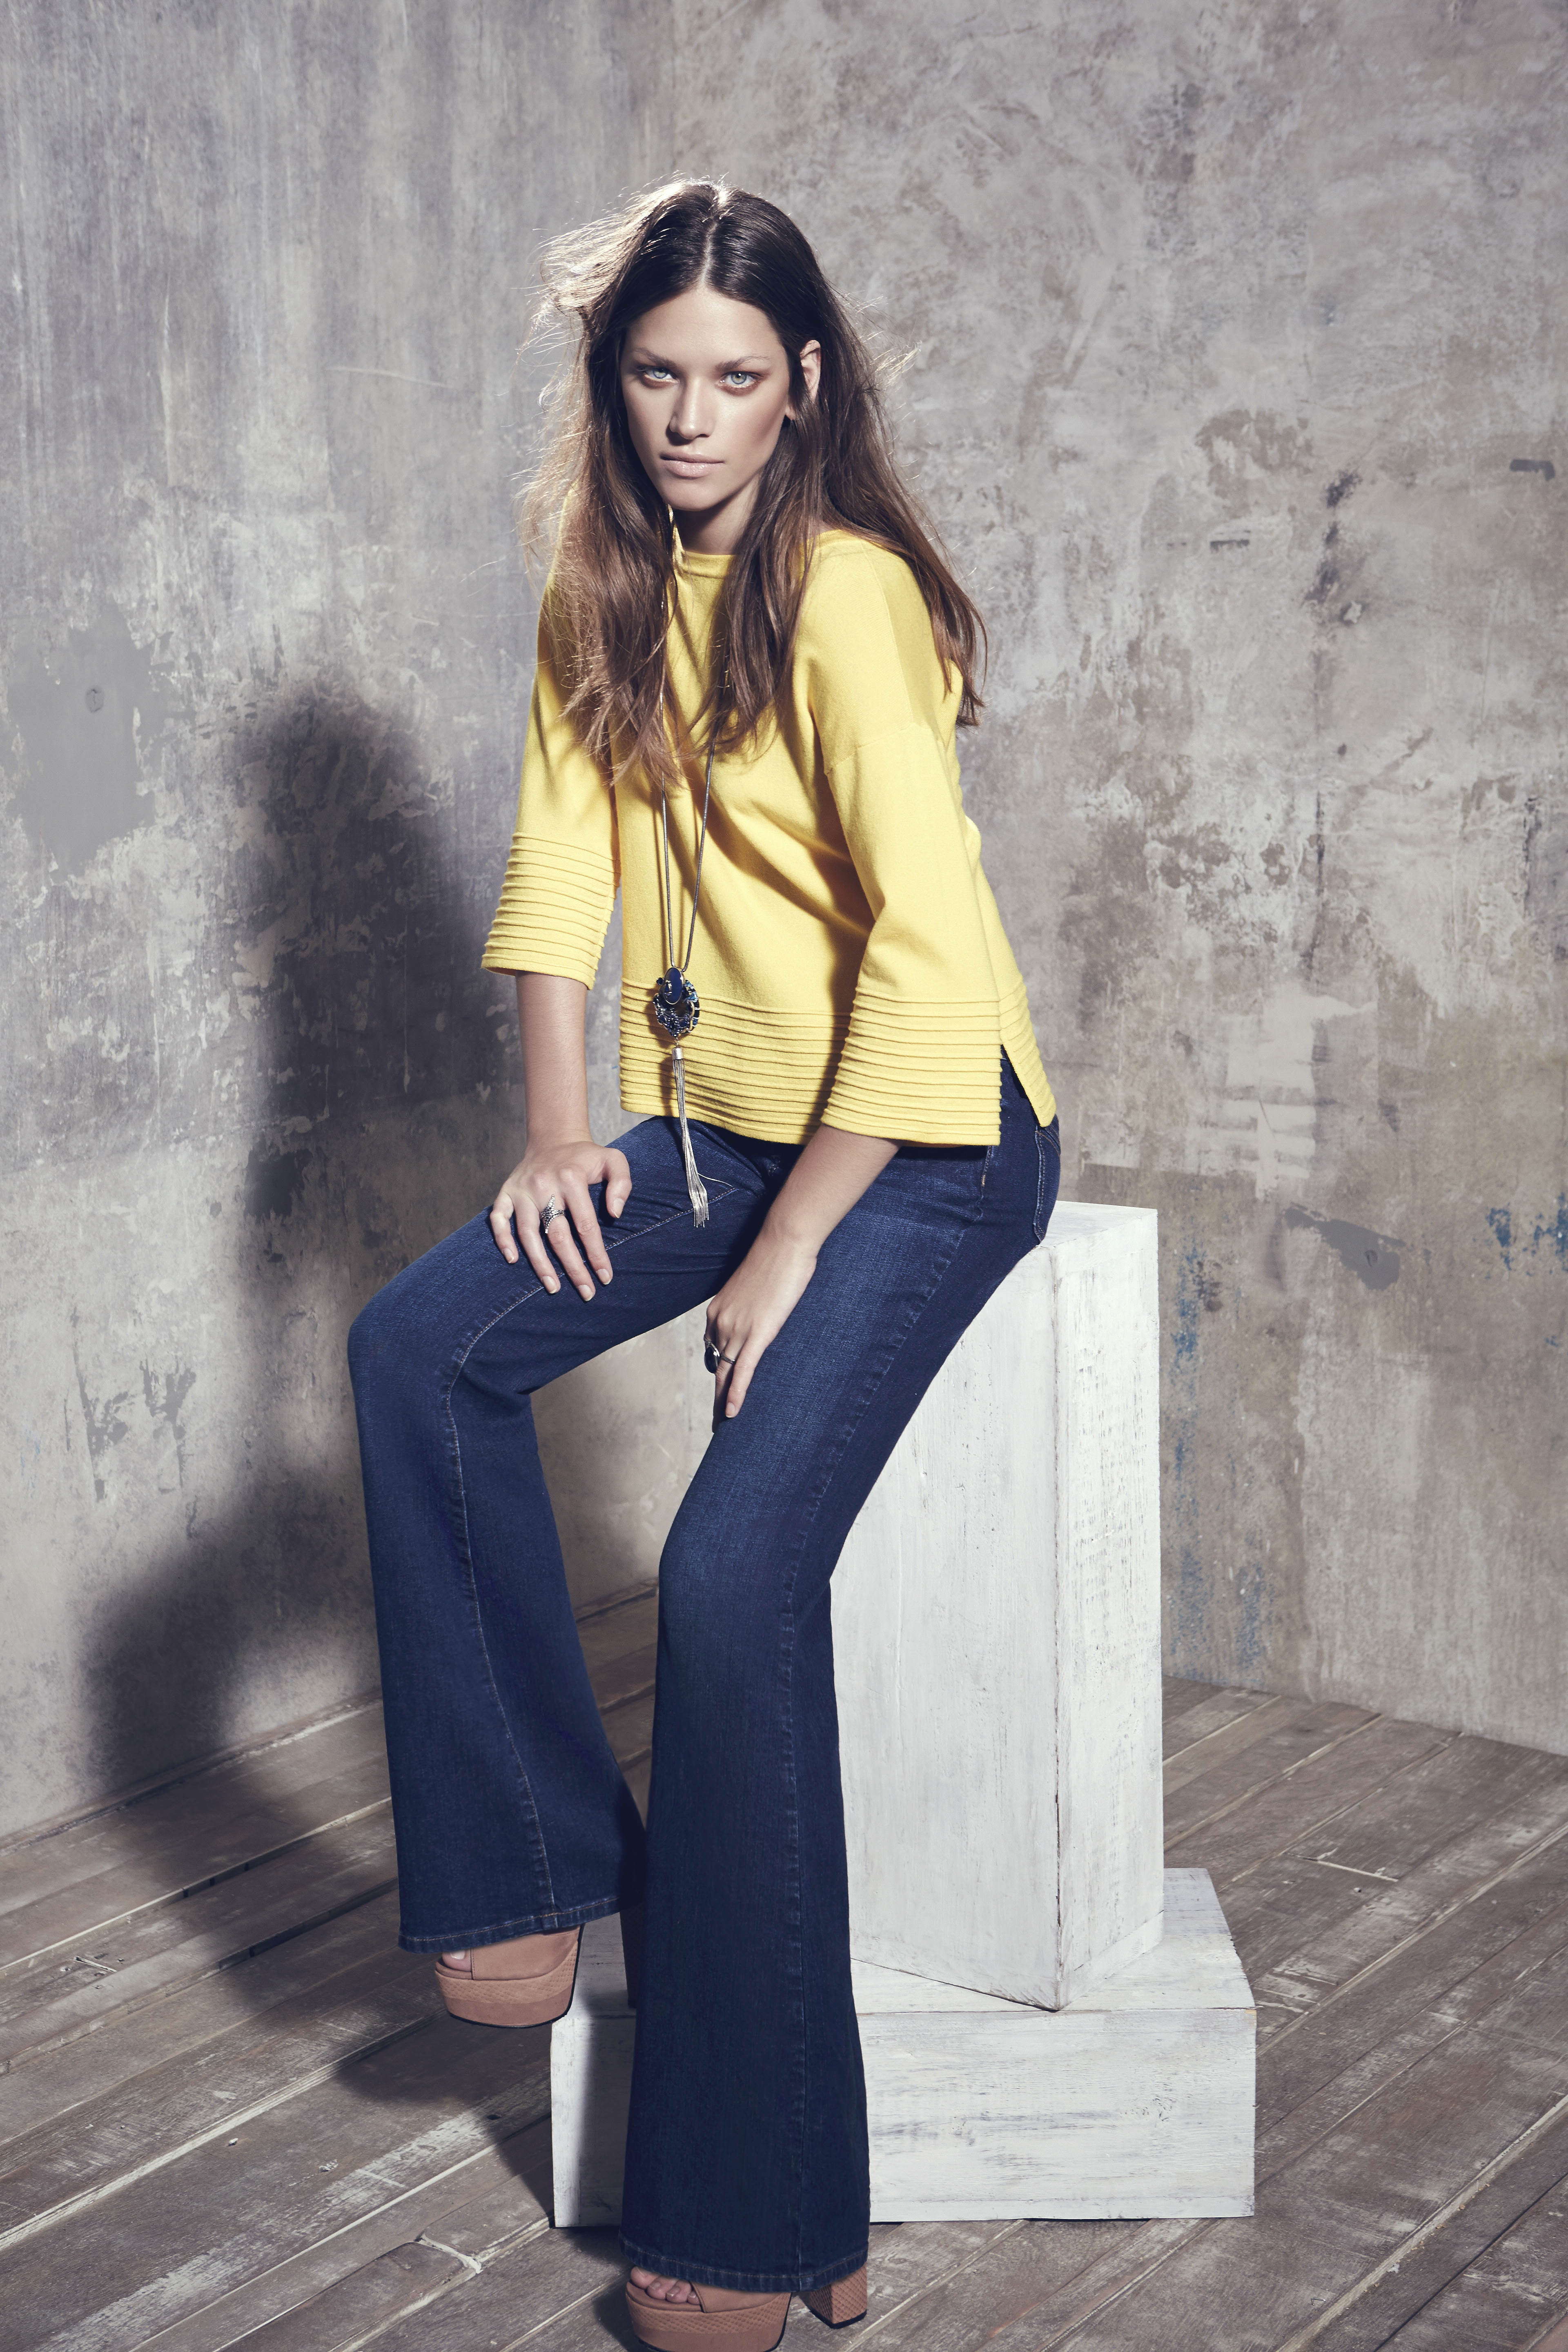 Blue jeans are a season must – Stylicious with Sinéad Ballantyne